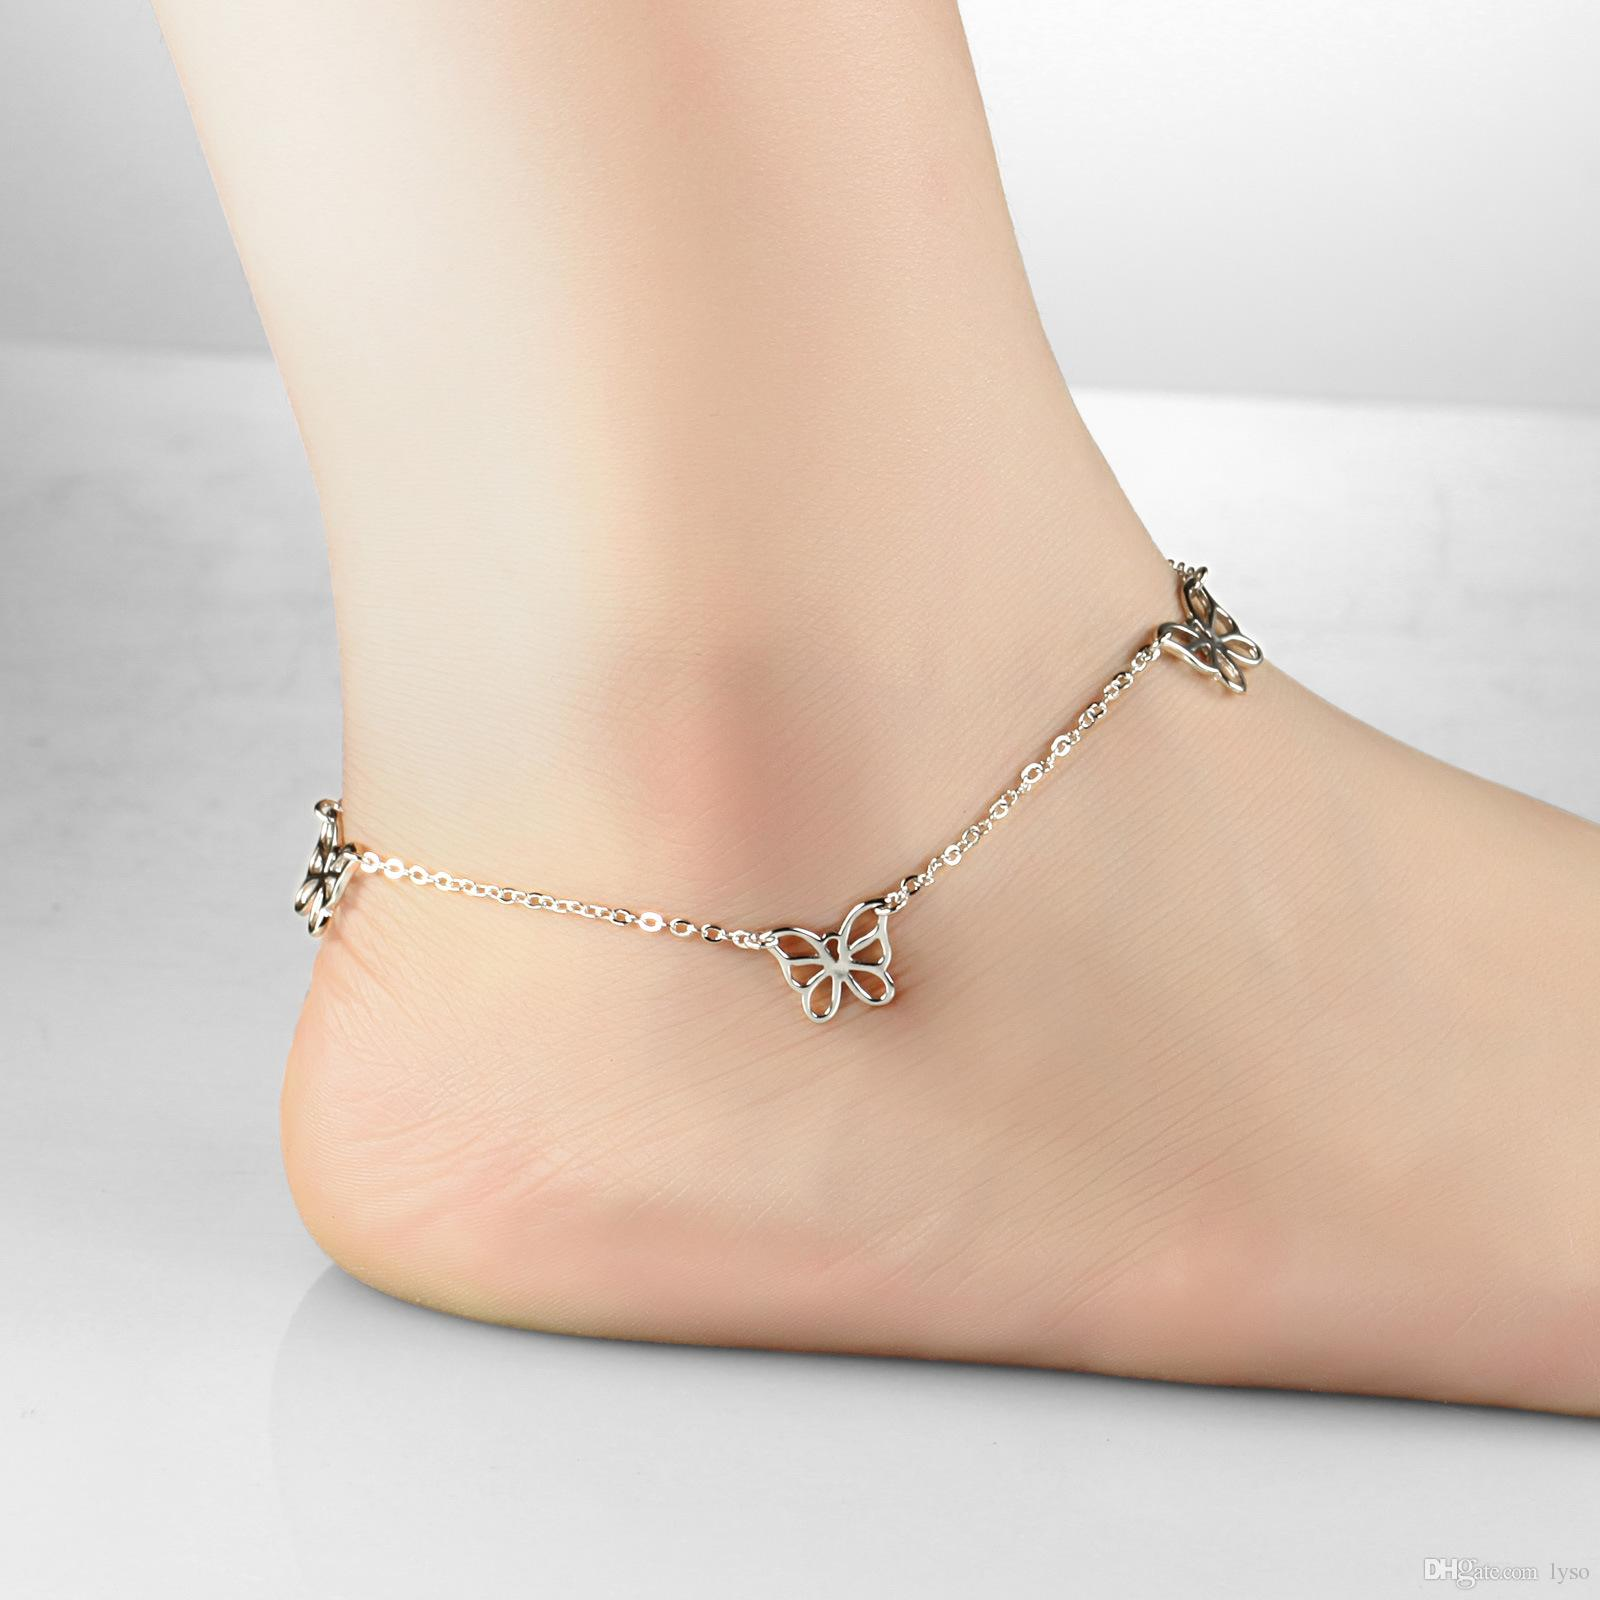 com rose a styleskier around ankle gold yrceusm your bracelet wonderful anklet